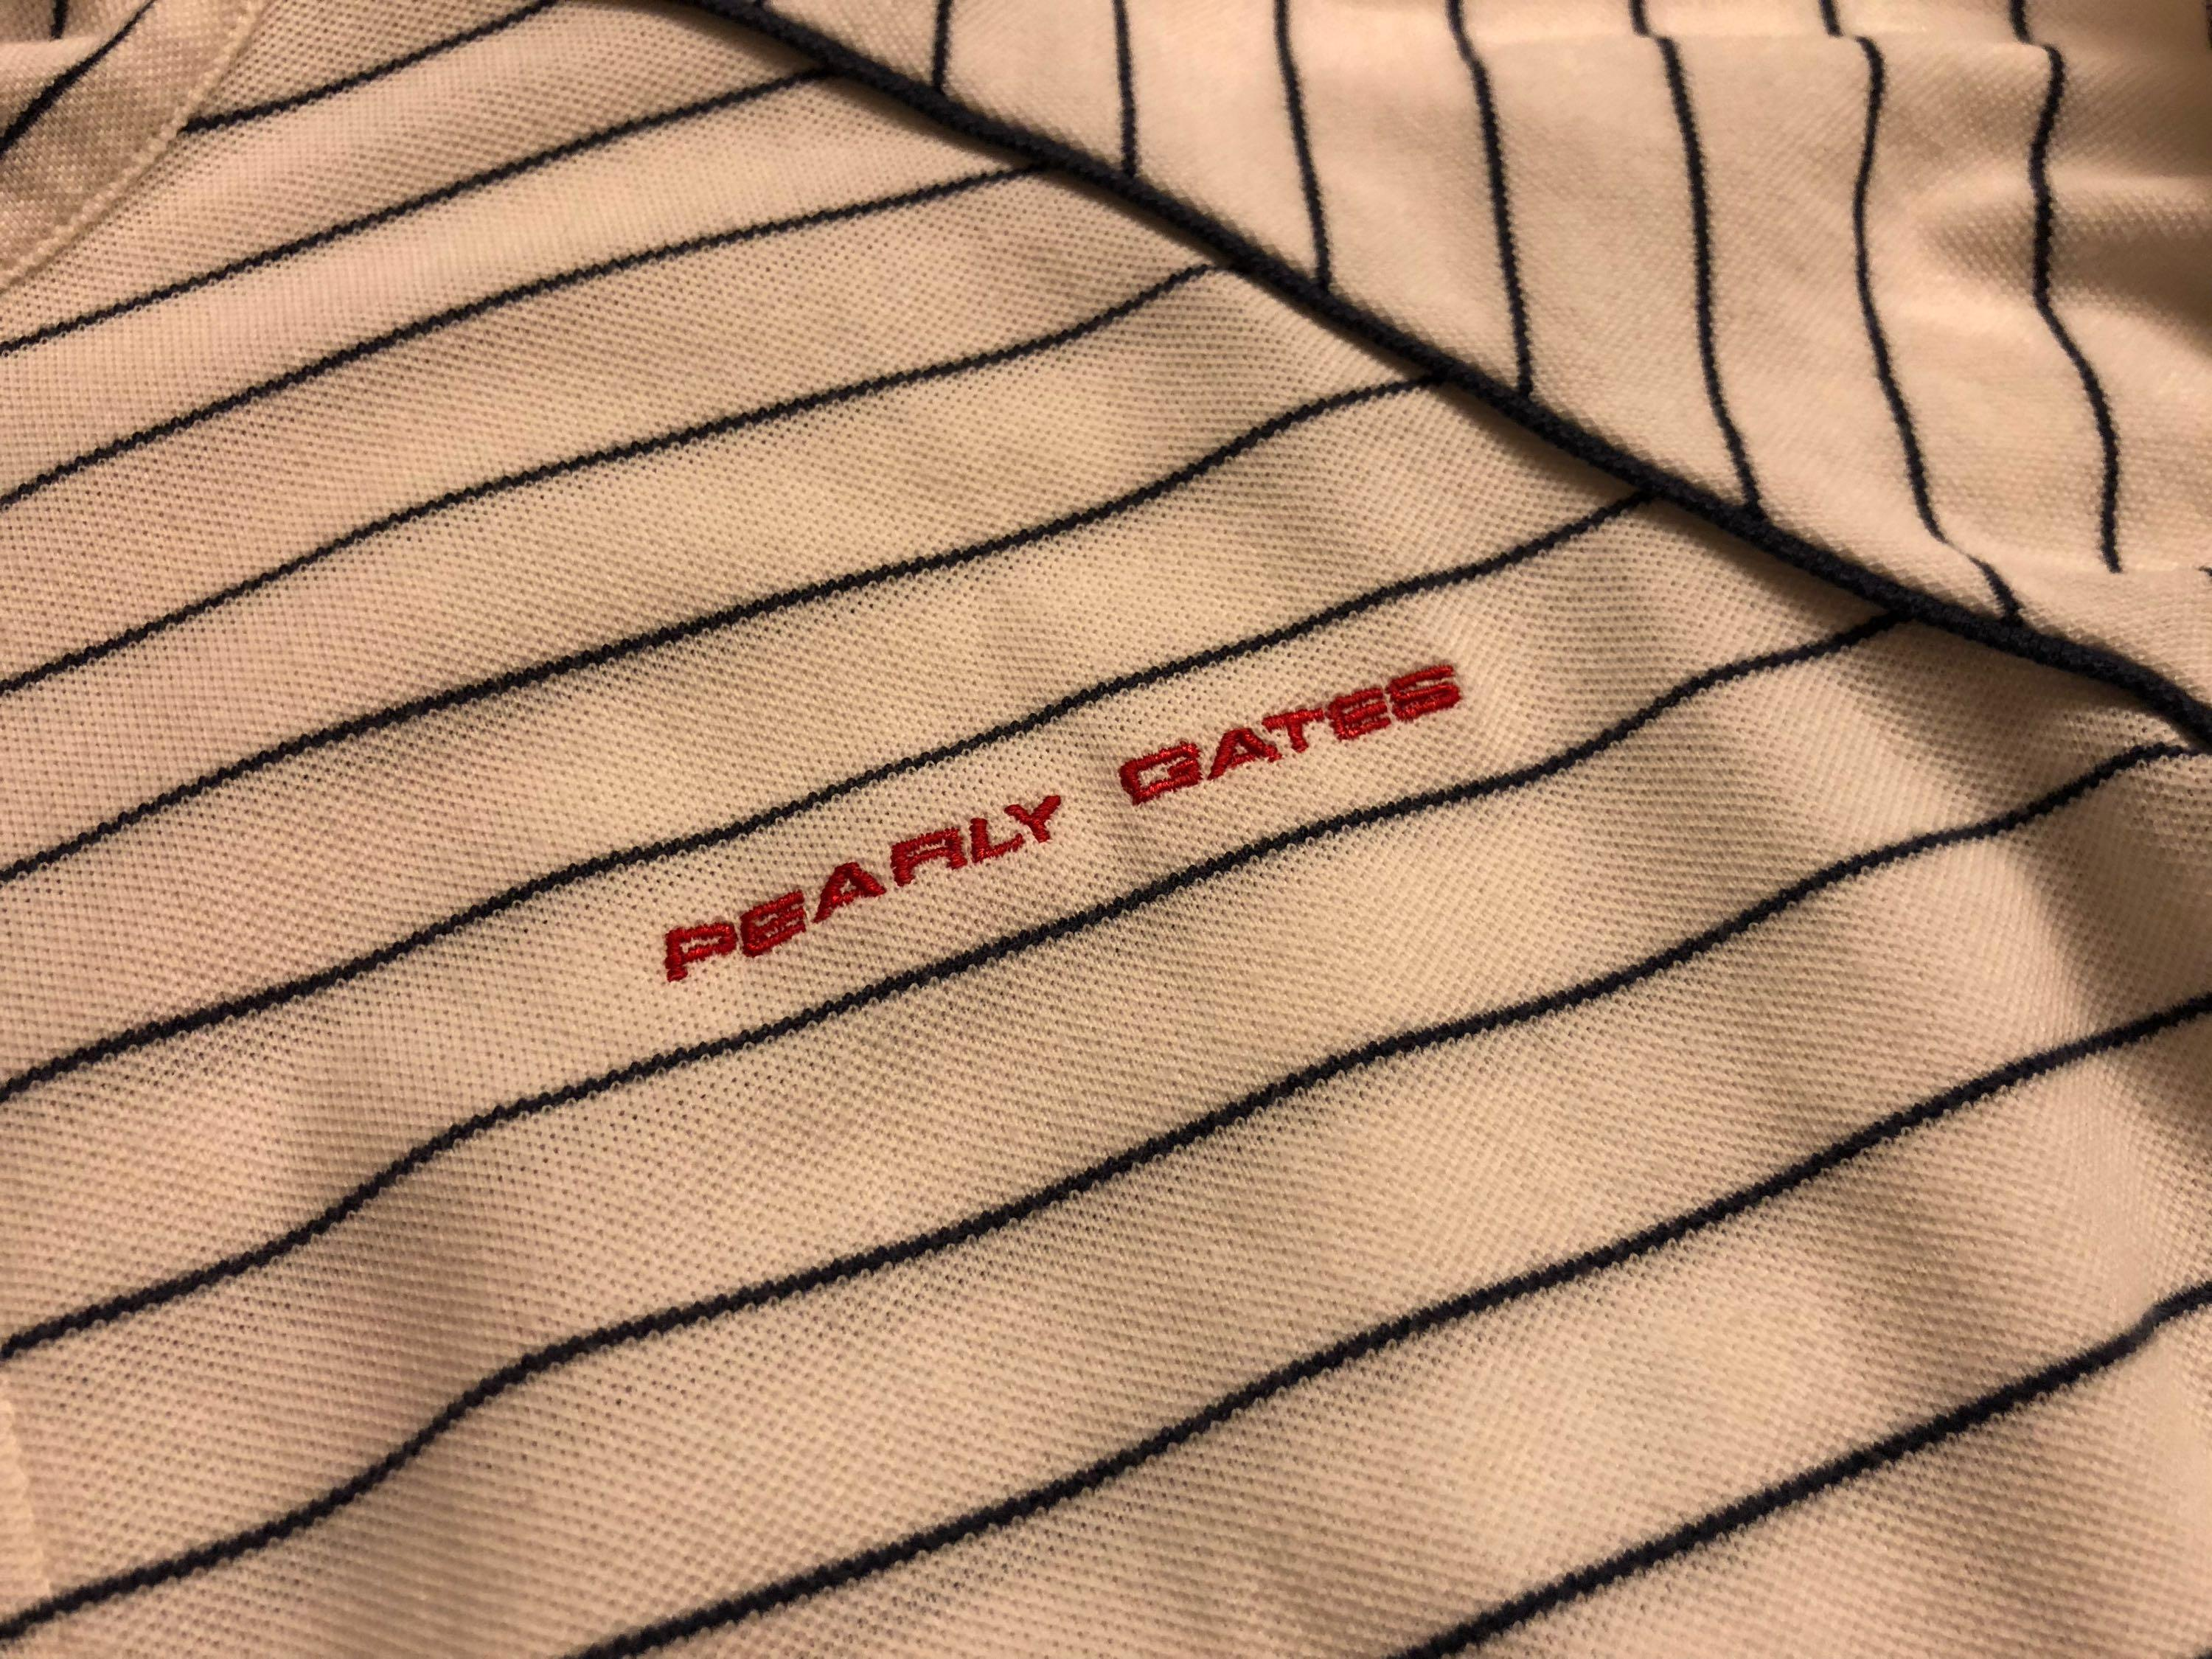 Pearly Gates Women's Polo Top